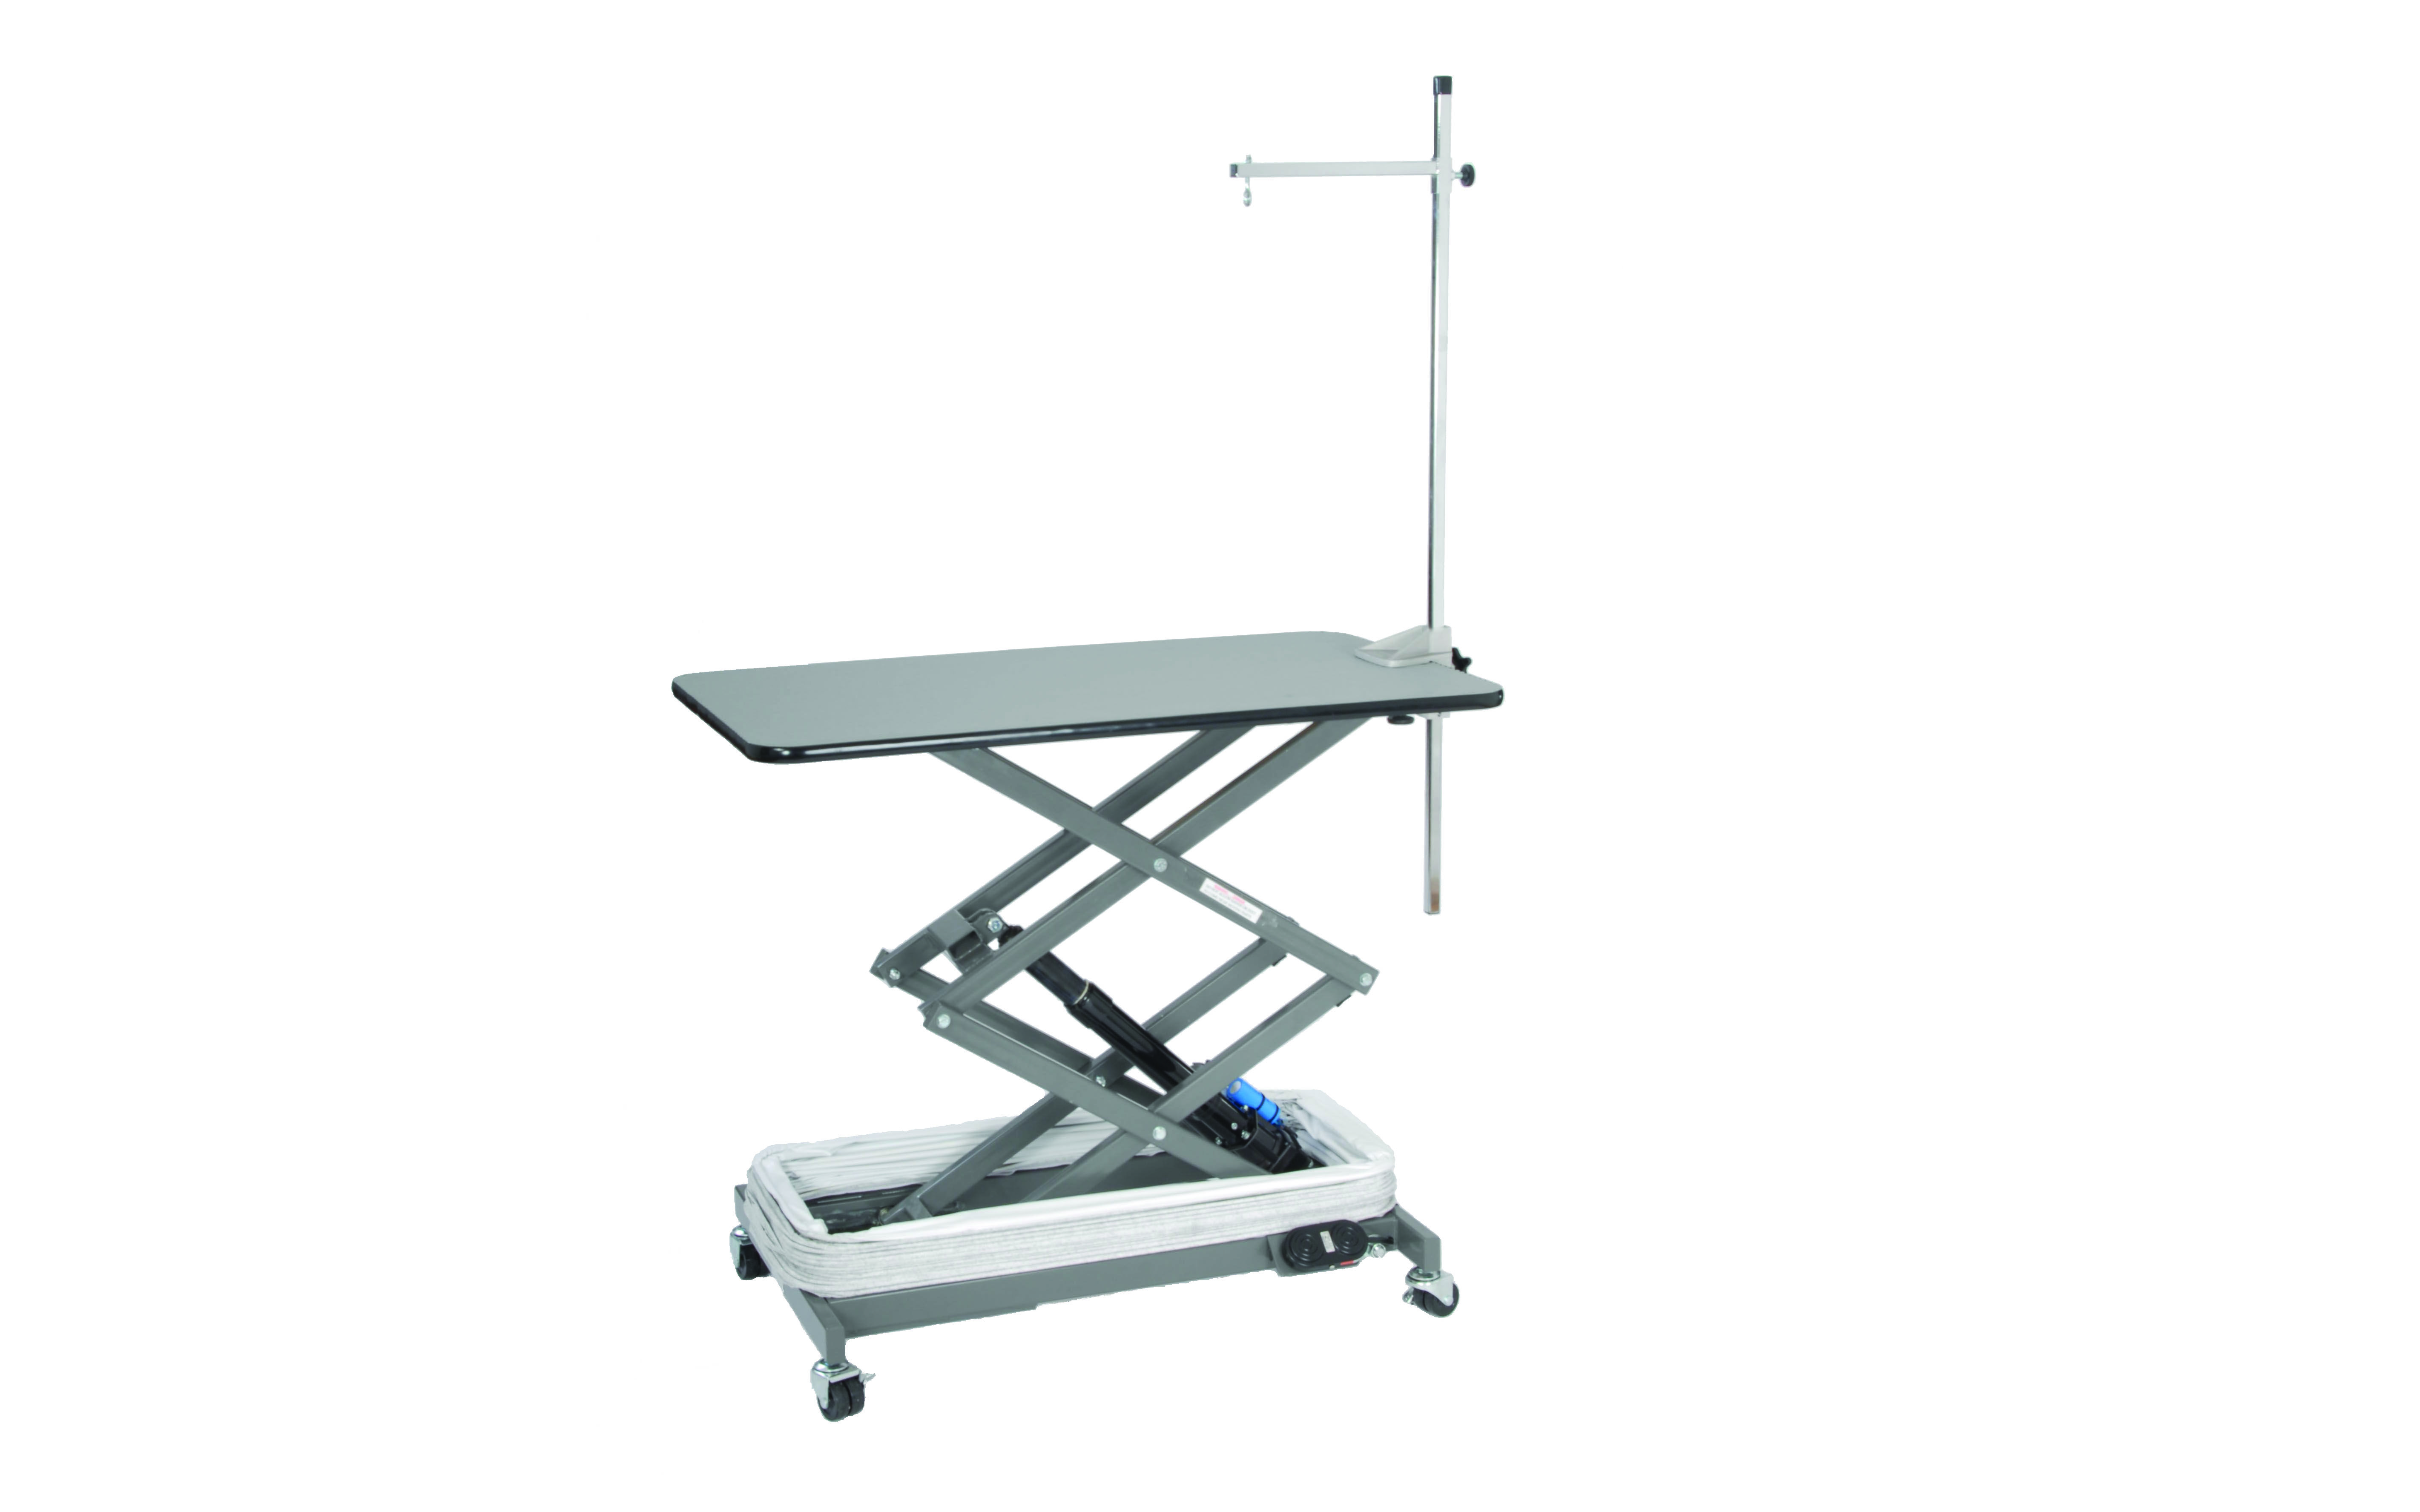 Electric Low Boy Dog Grooming Table Dog Grooming Flexible Dog Pet Grooming Salon